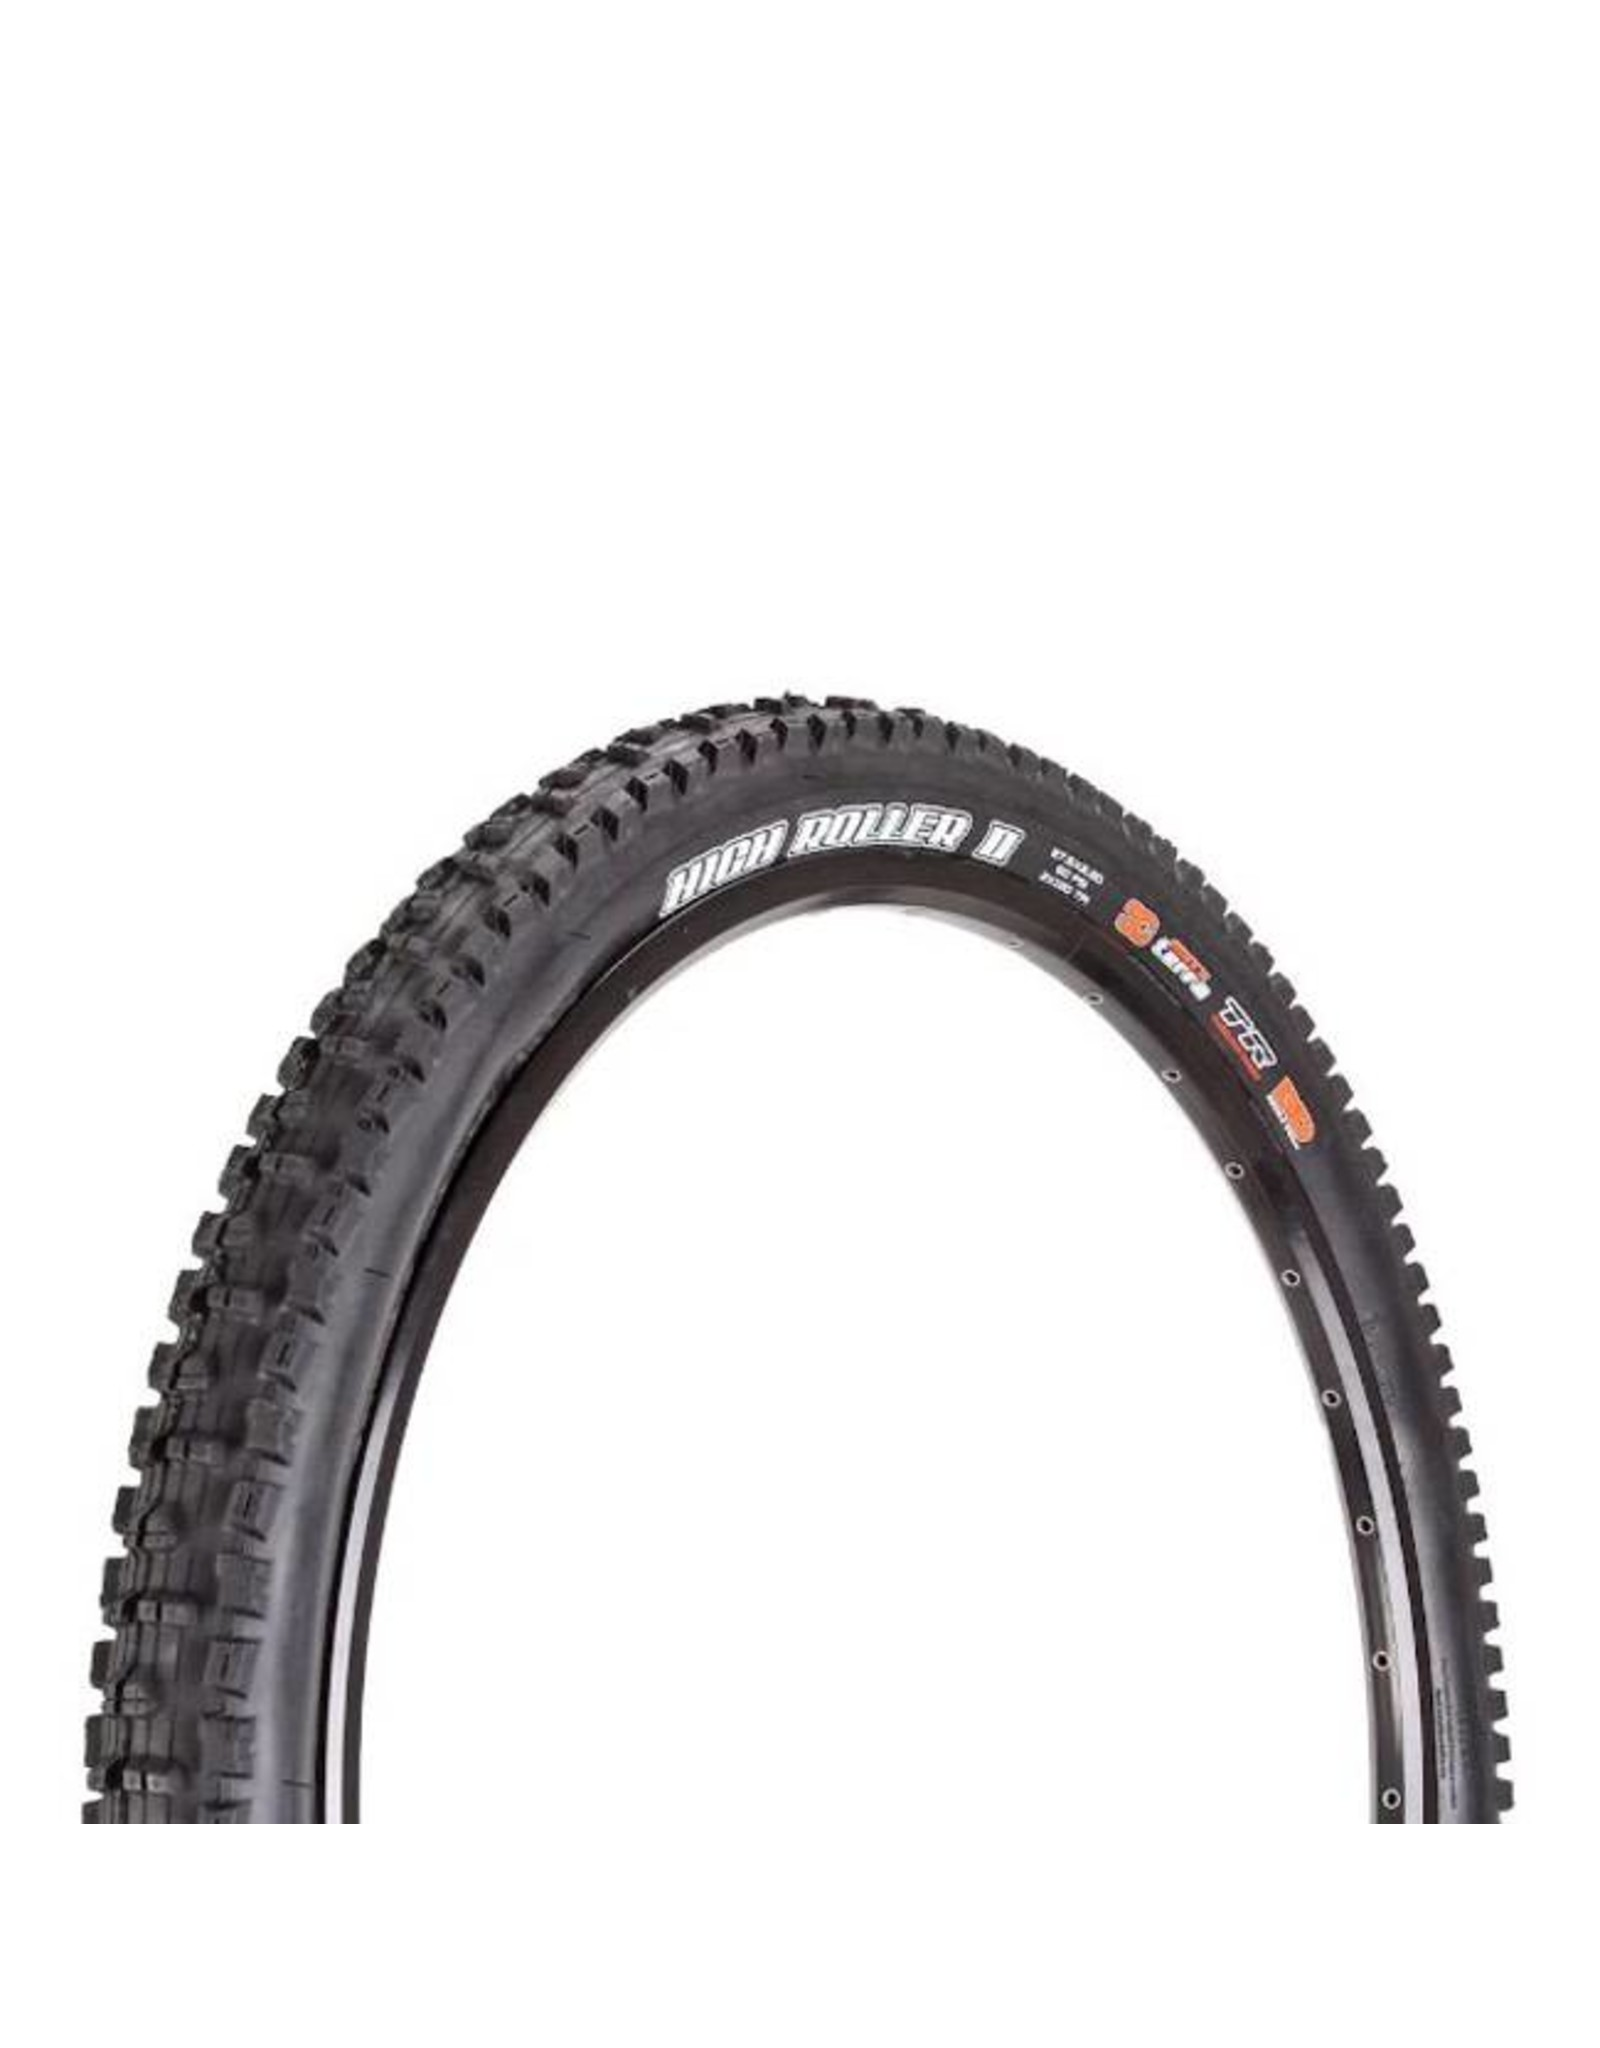 "Maxxis Maxxis High Roller II Tire: 27.5 x 2.30"", Folding, 120tpi, 3C MaxxTerra, Double Down, Tubeless Ready, Black"